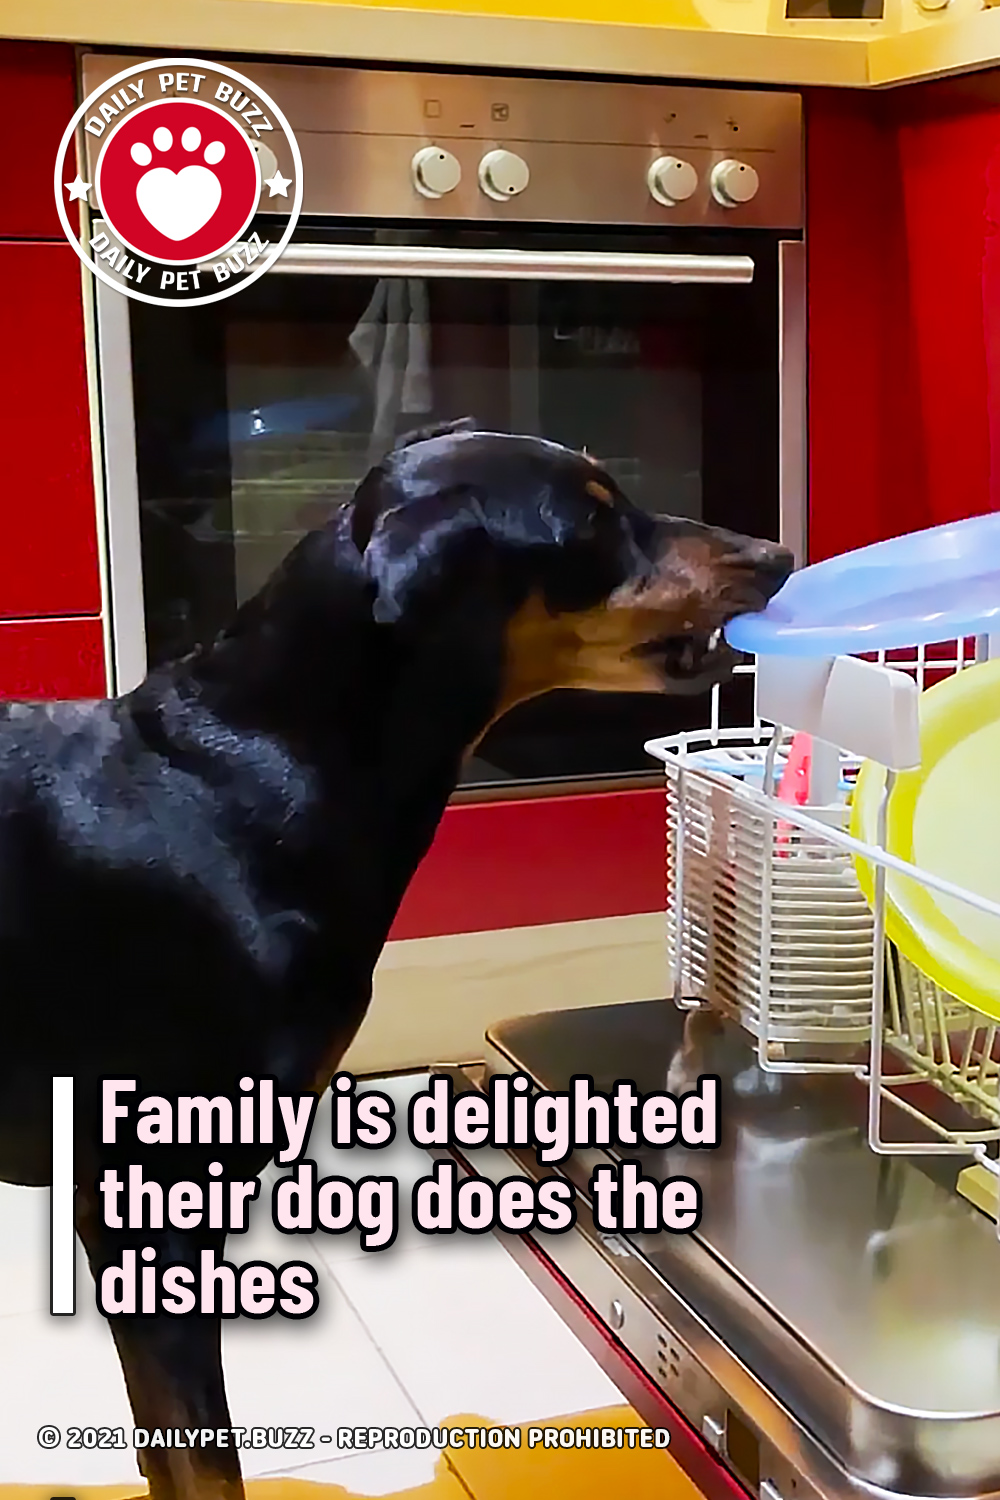 Family is delighted their dog does the dishes